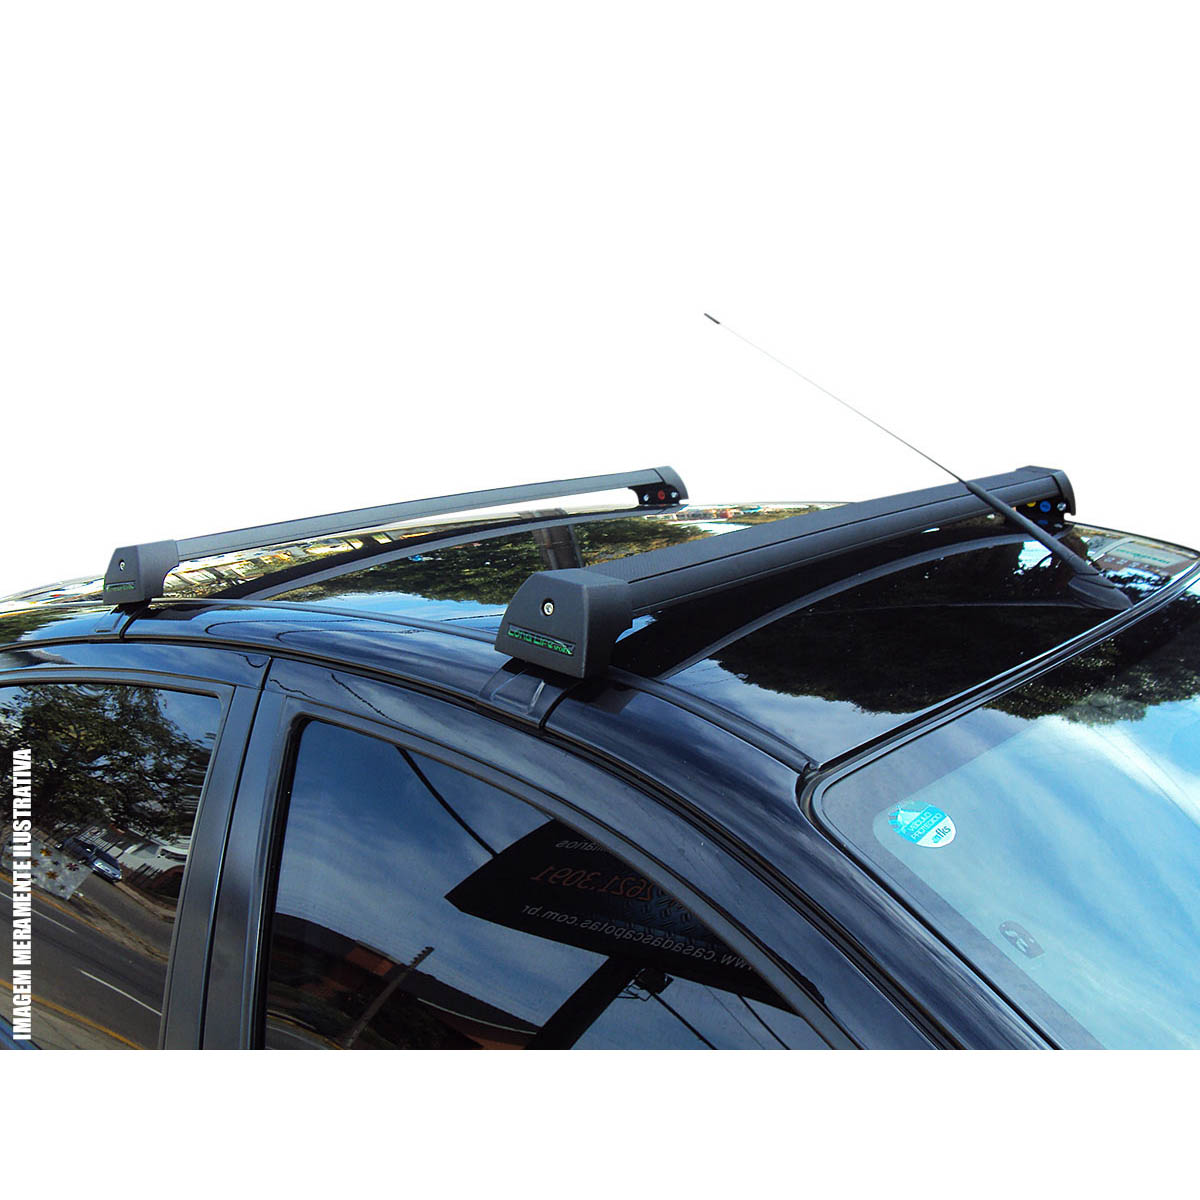 Rack de teto Long Life Sports preto Onix Prisma 2013 a 2019 ou Joy 2020